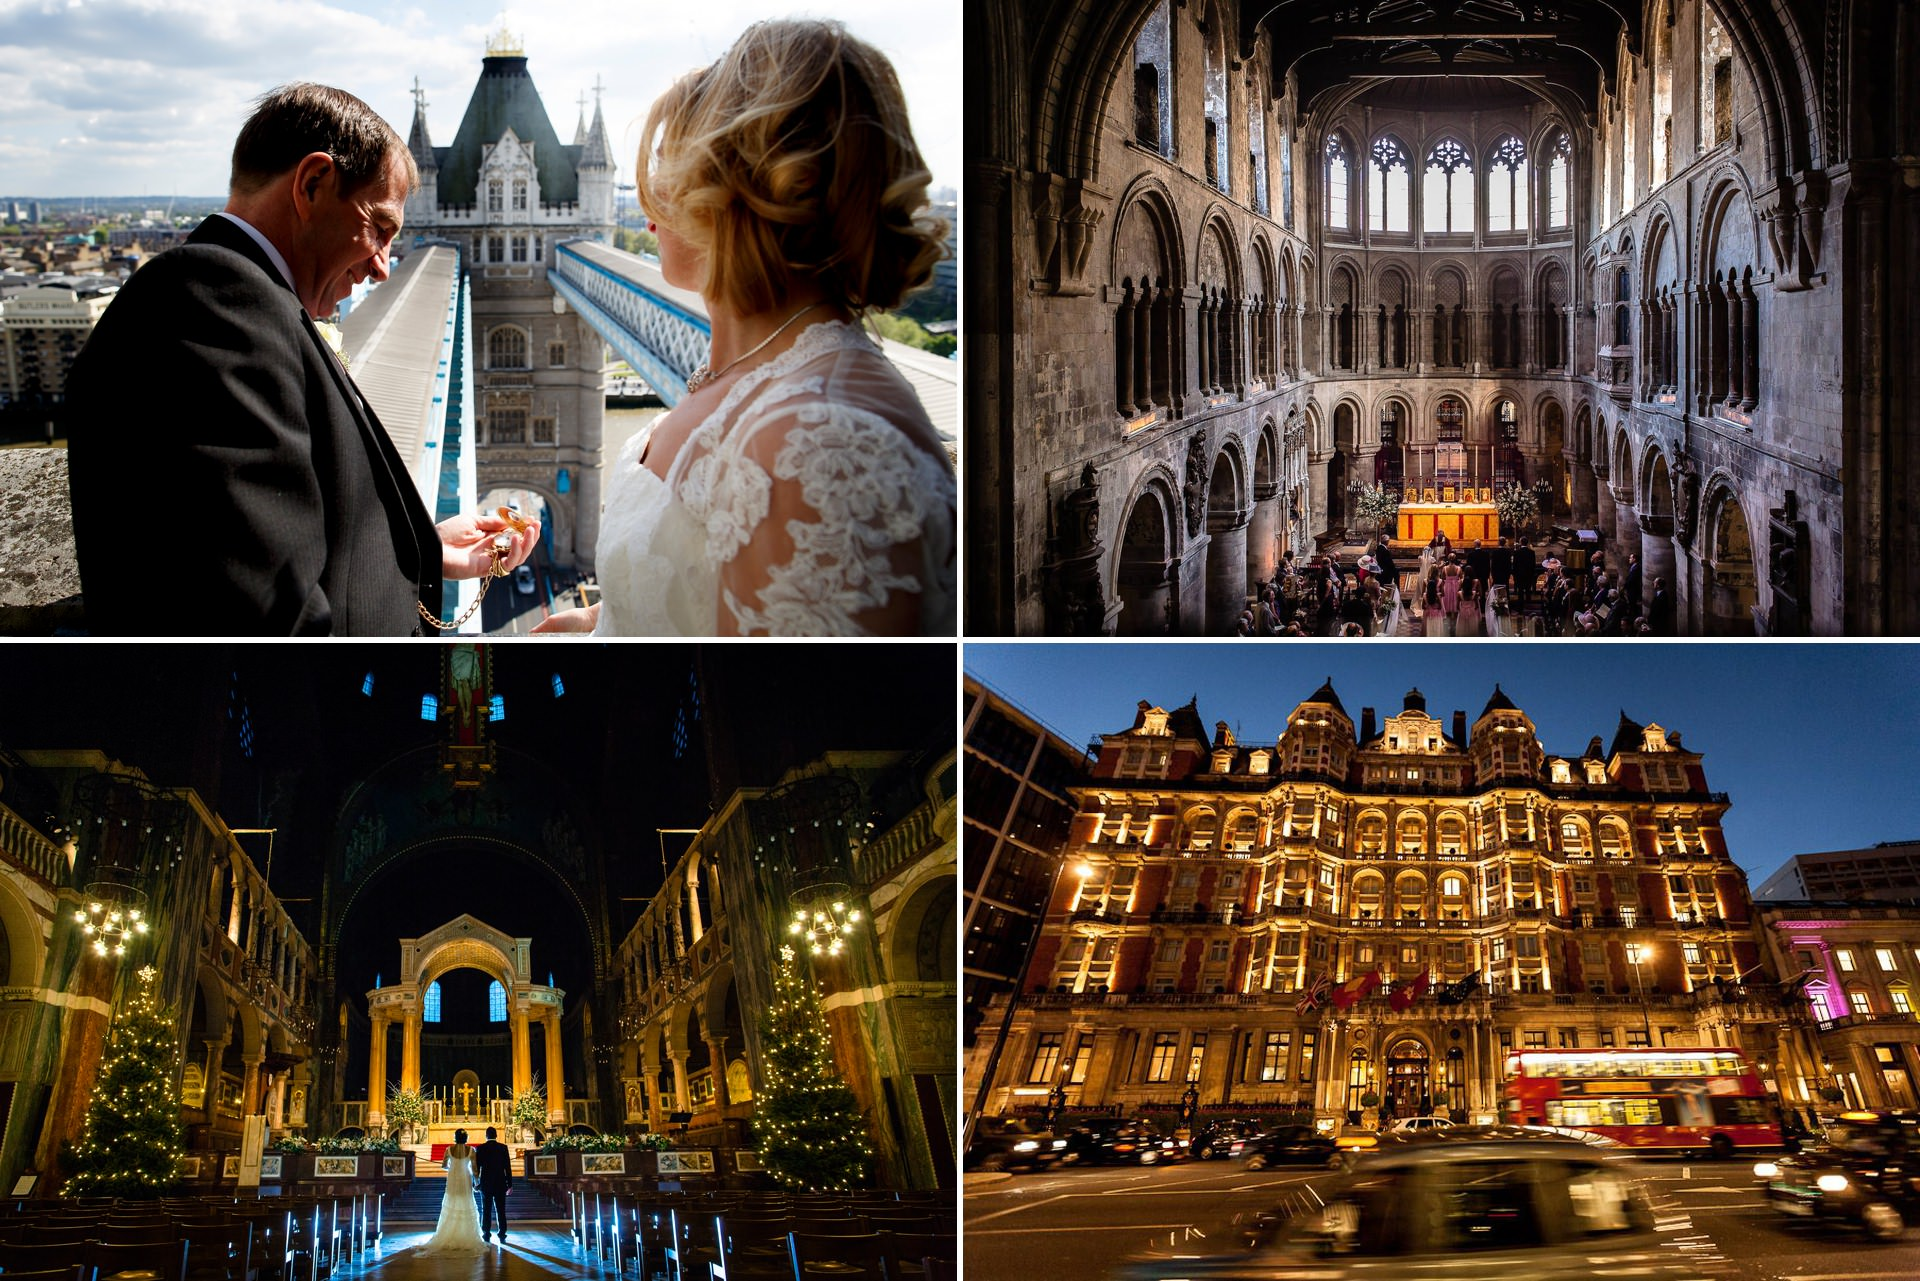 London wedding photographer variety of stunning London venues for weddings and wedding photography